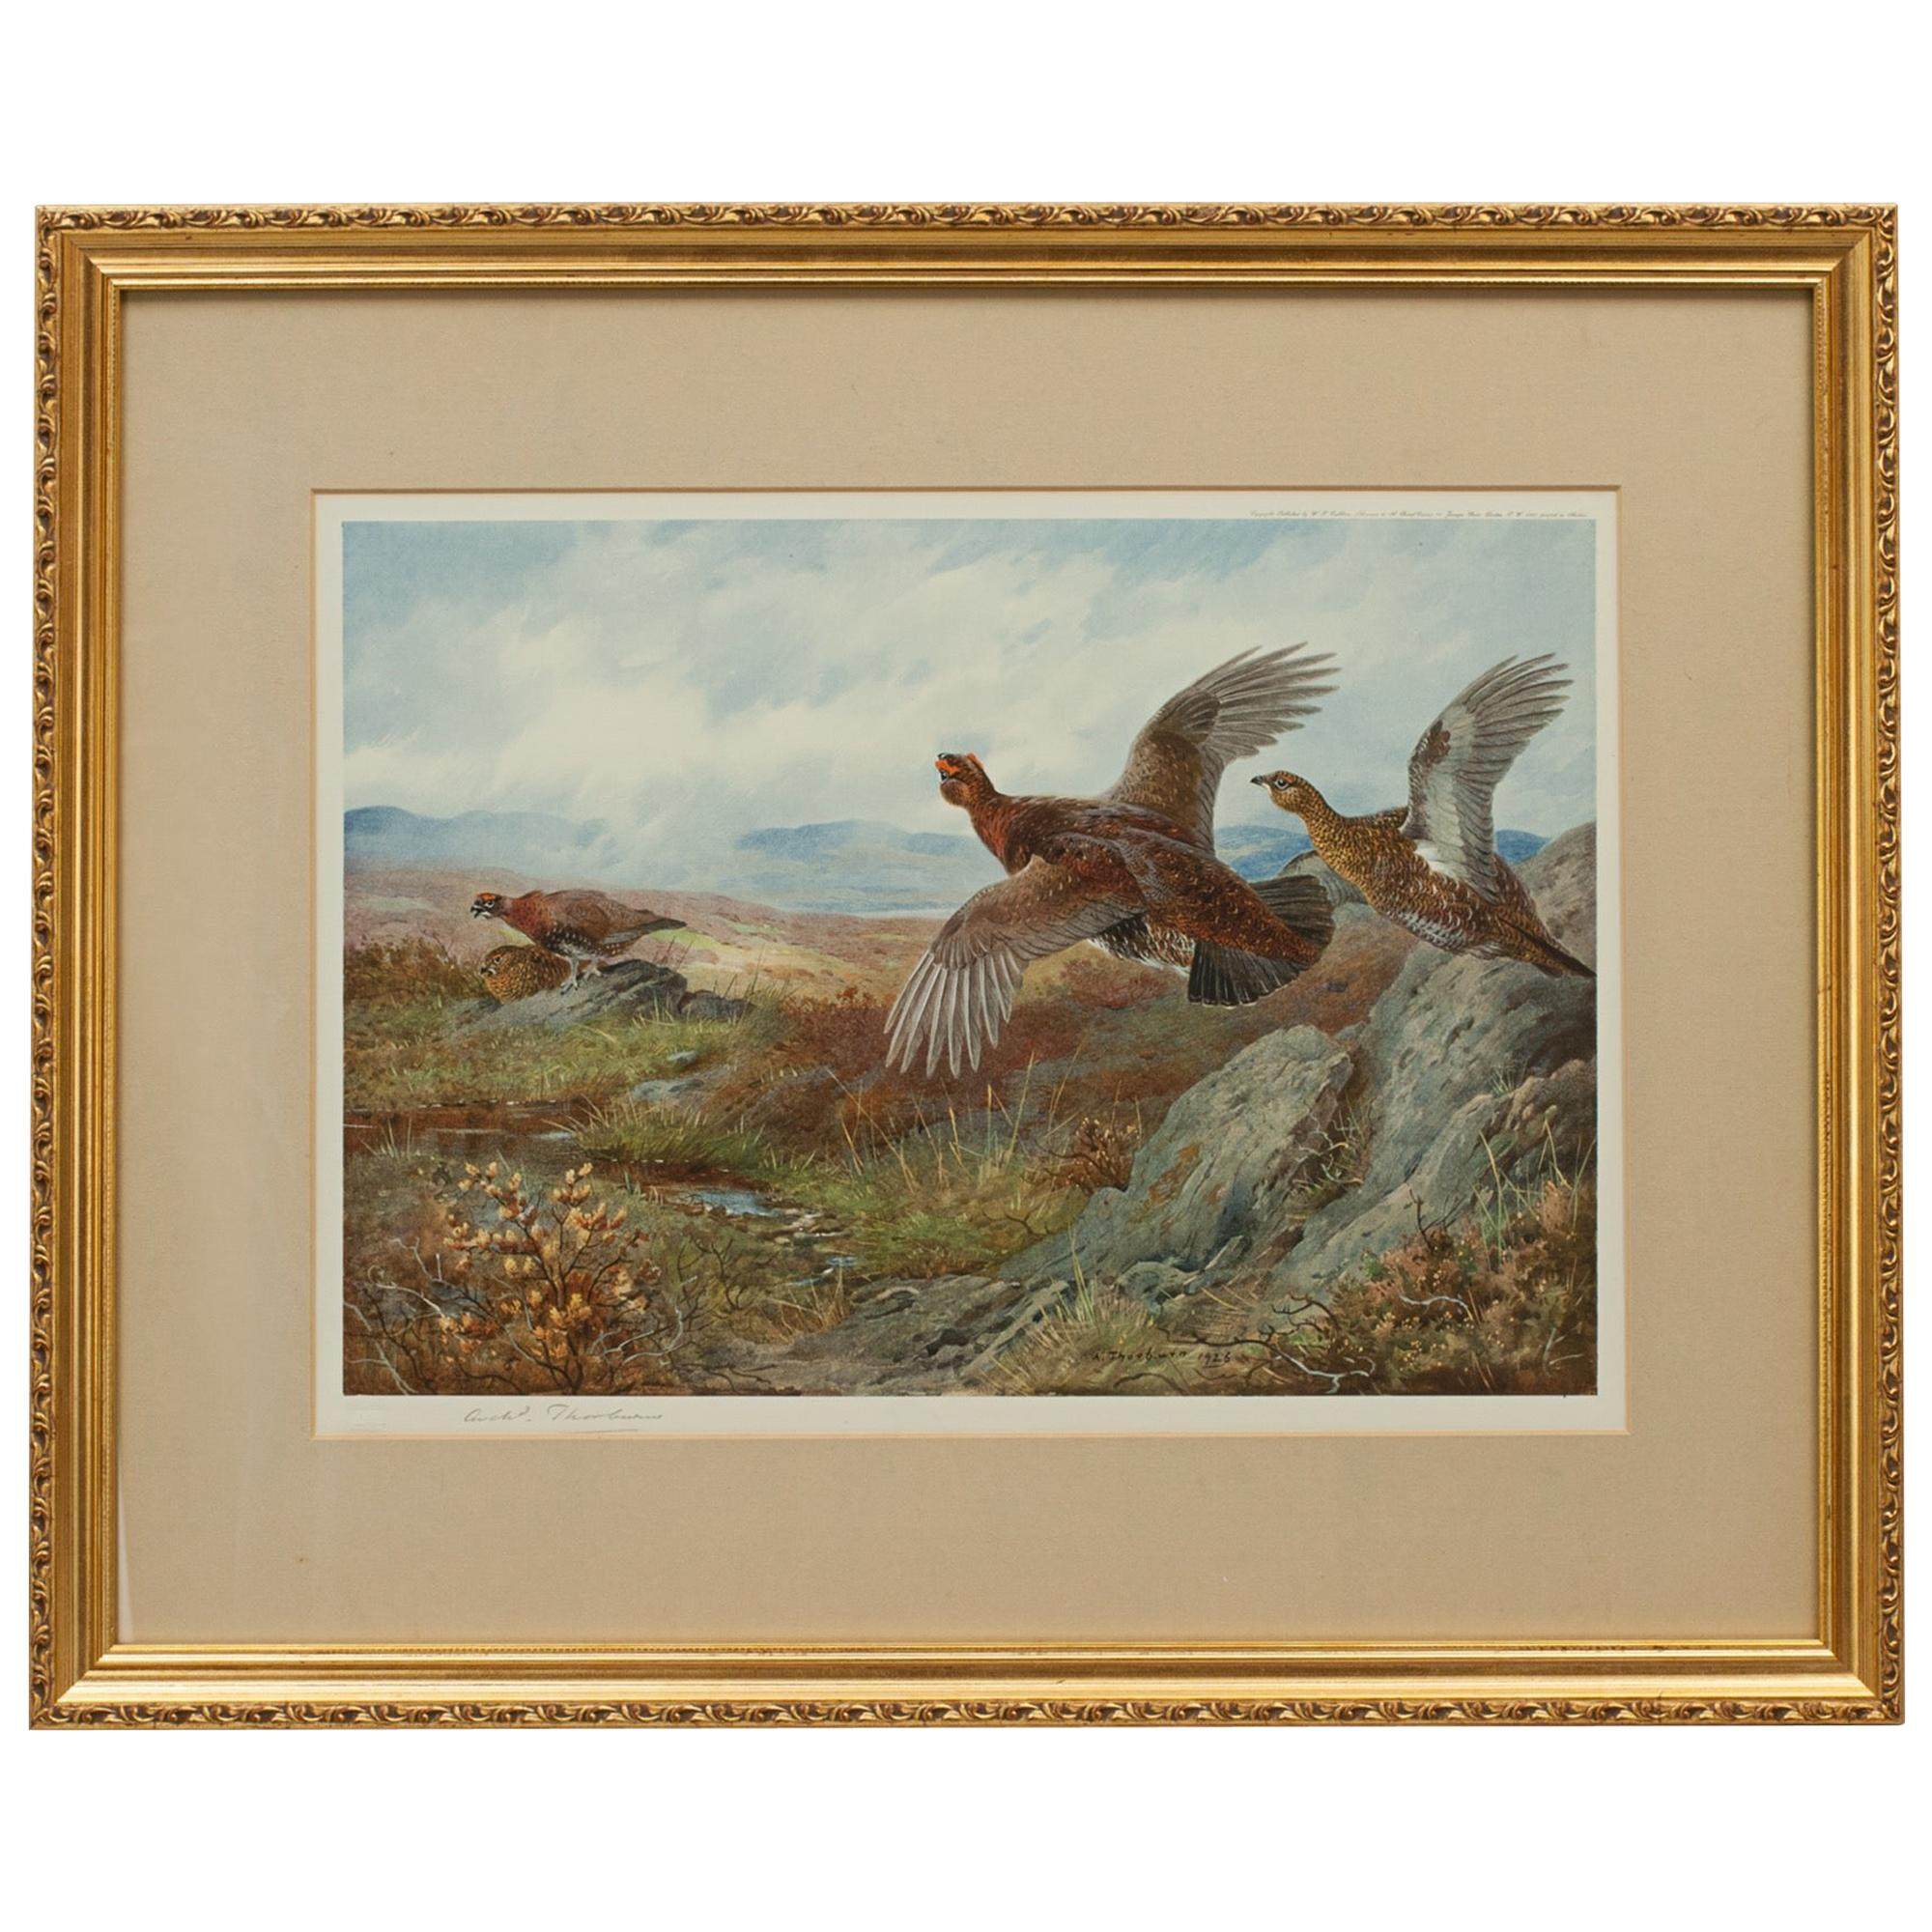 Antique Shooting Print, the Seasons by Archibald Thorburn, Summer, Grouse